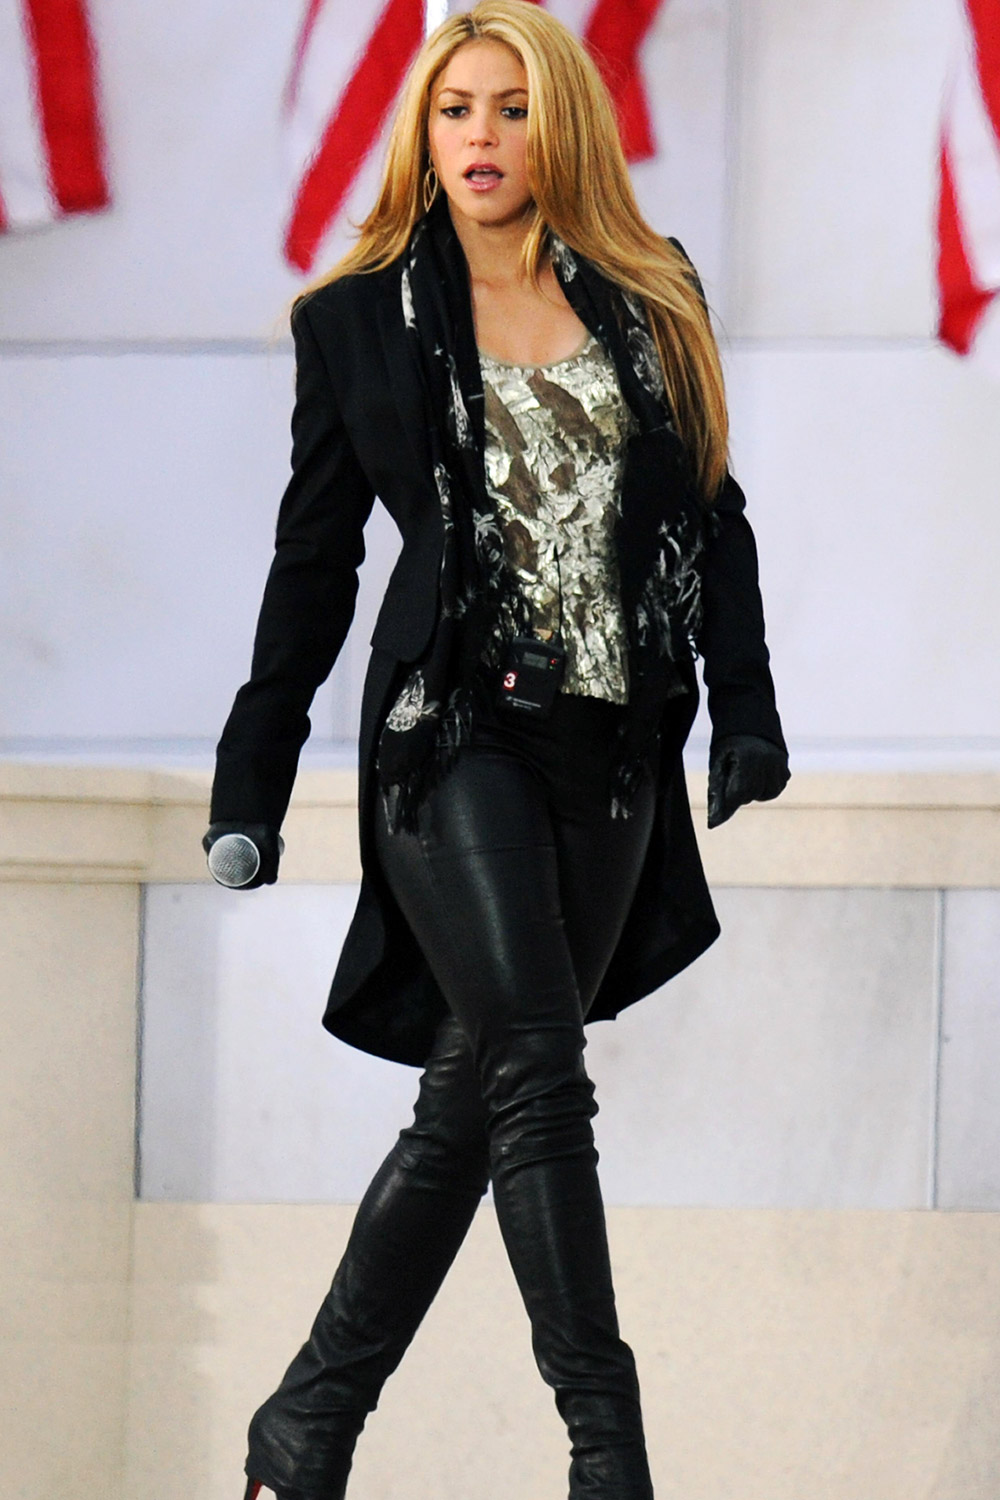 Shakira at We Are One The Obama Inaugural Celebration